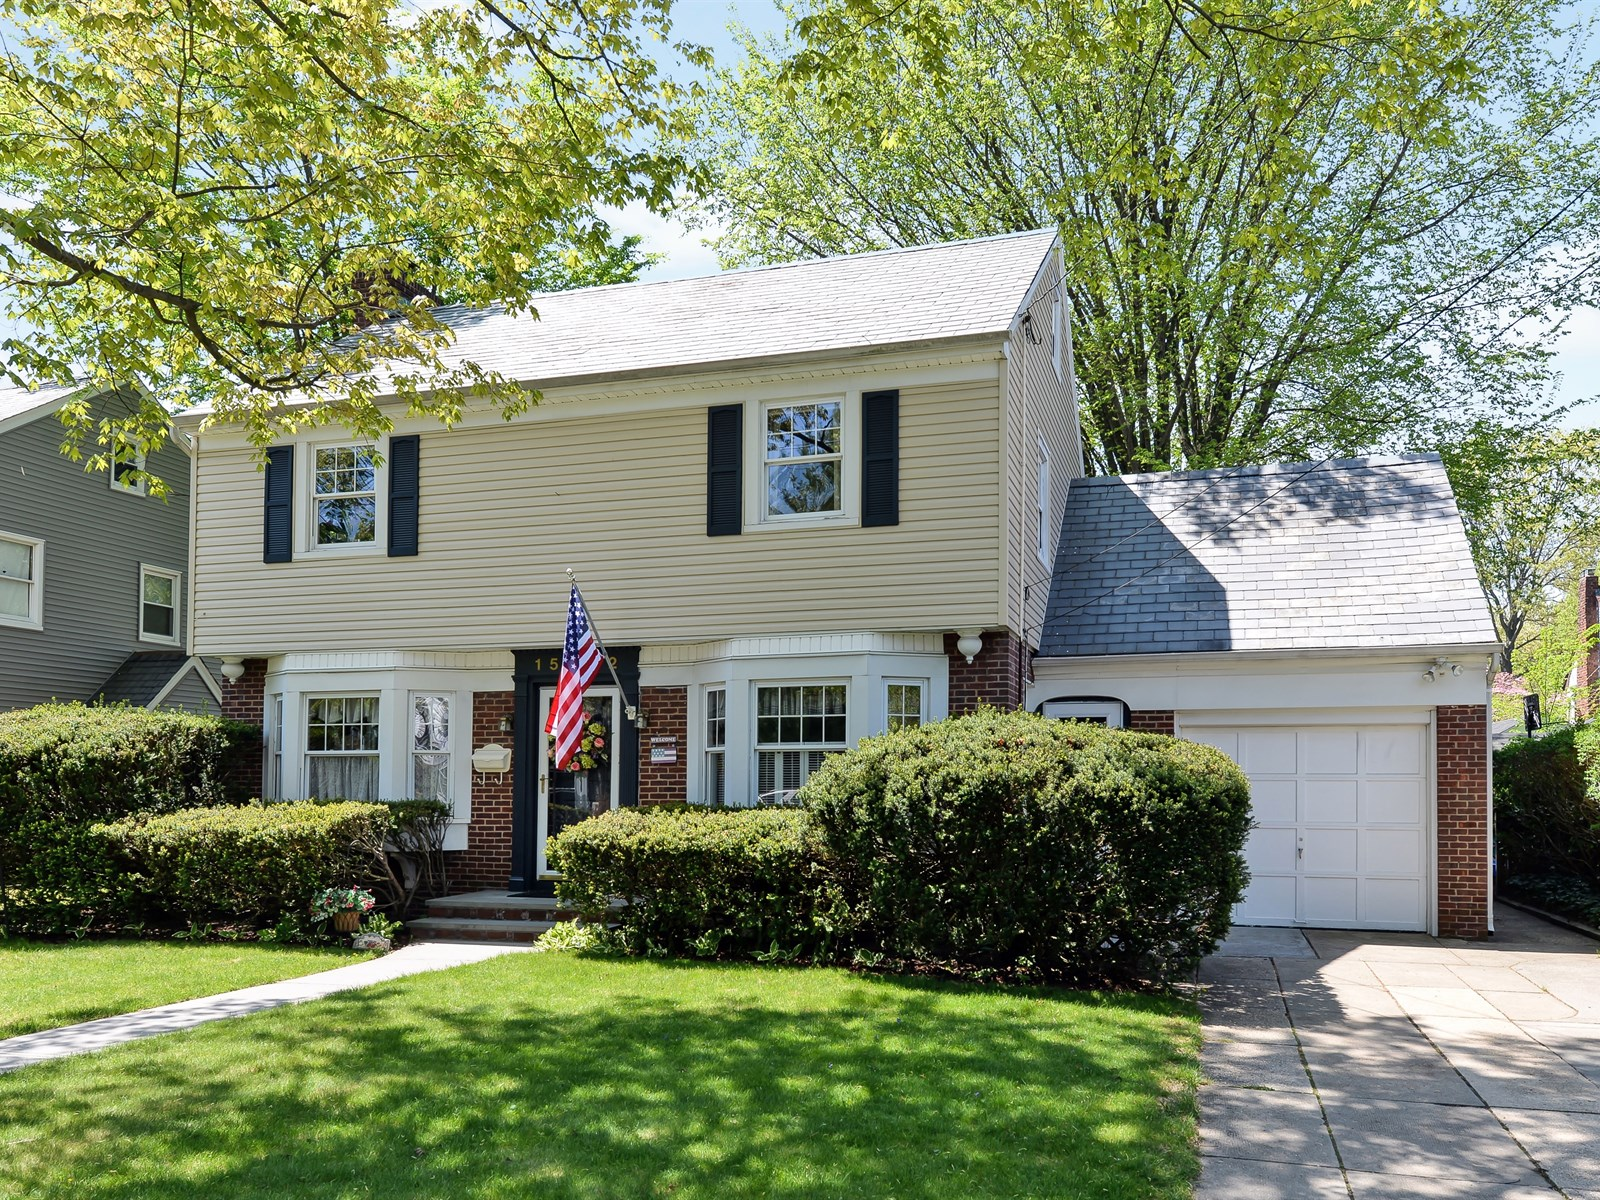 Single Family Home for Sale at Colonial 1582 Victoria St Baldwin, New York 11510 United States